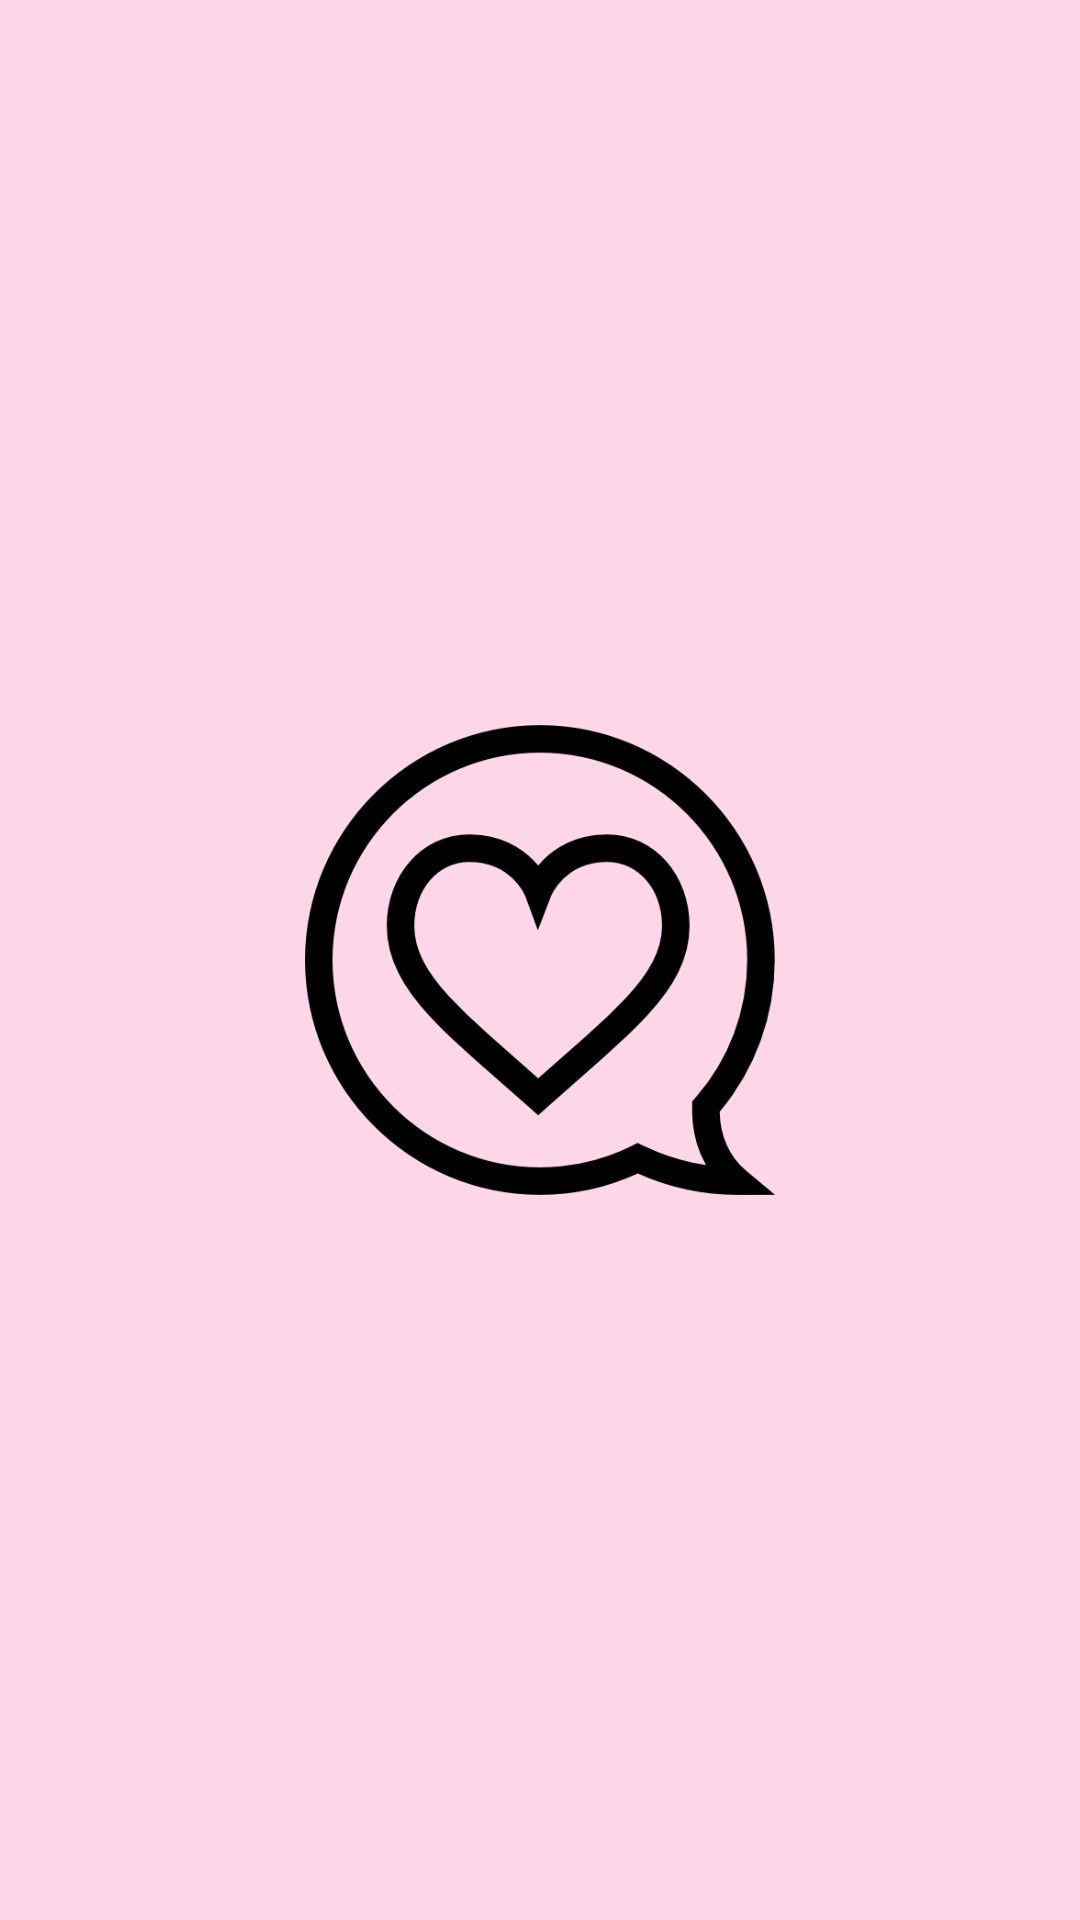 Love Pink Aesthetic Wallpapers Free Download